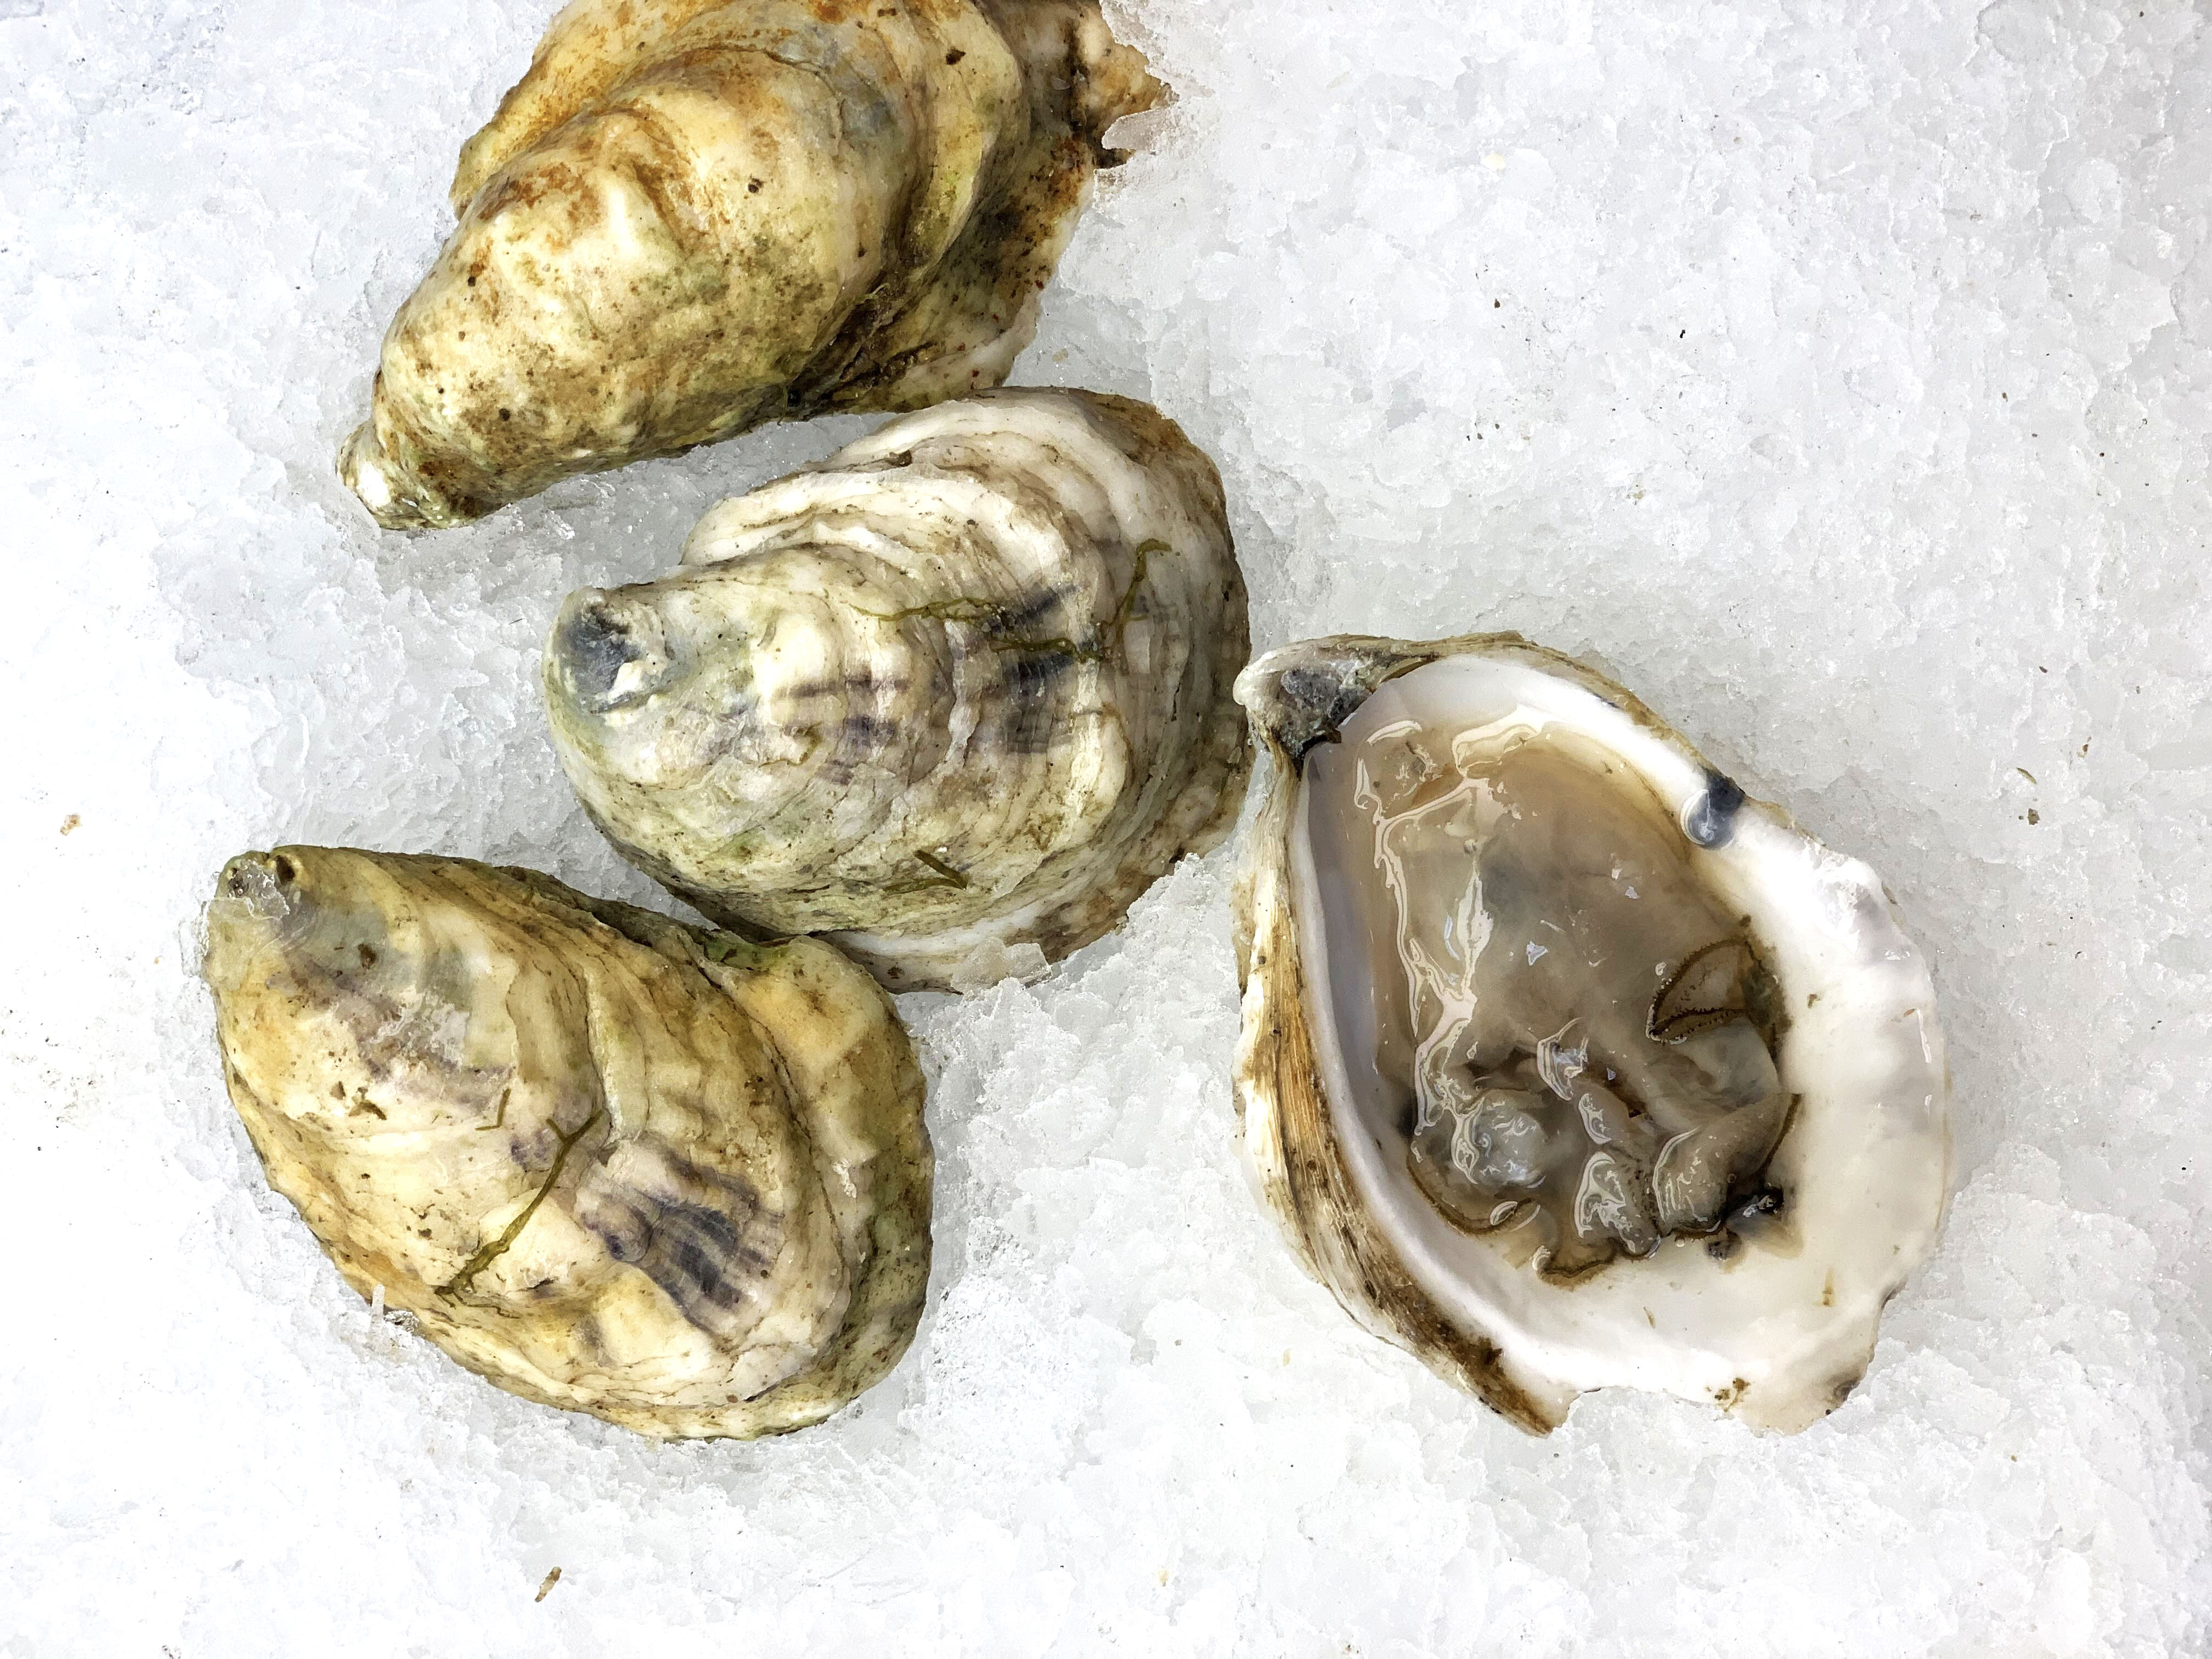 Oysters, Great White